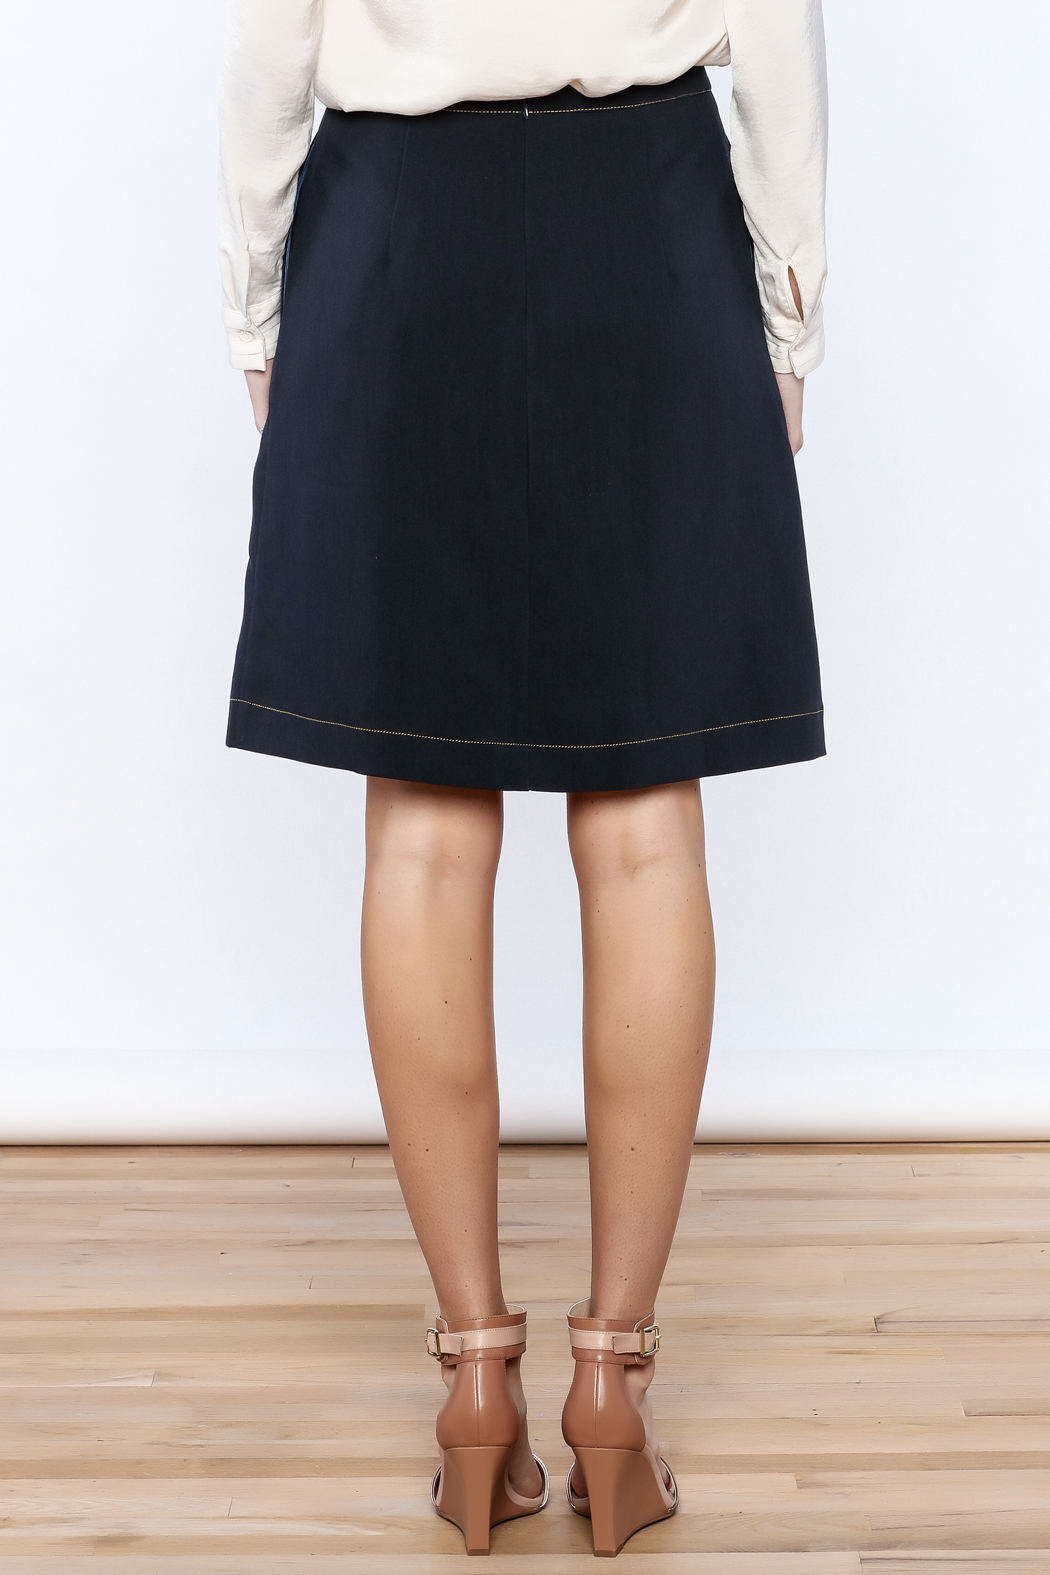 Alice's Pig Navy Pleated Knee Skirt - Back Cropped Image